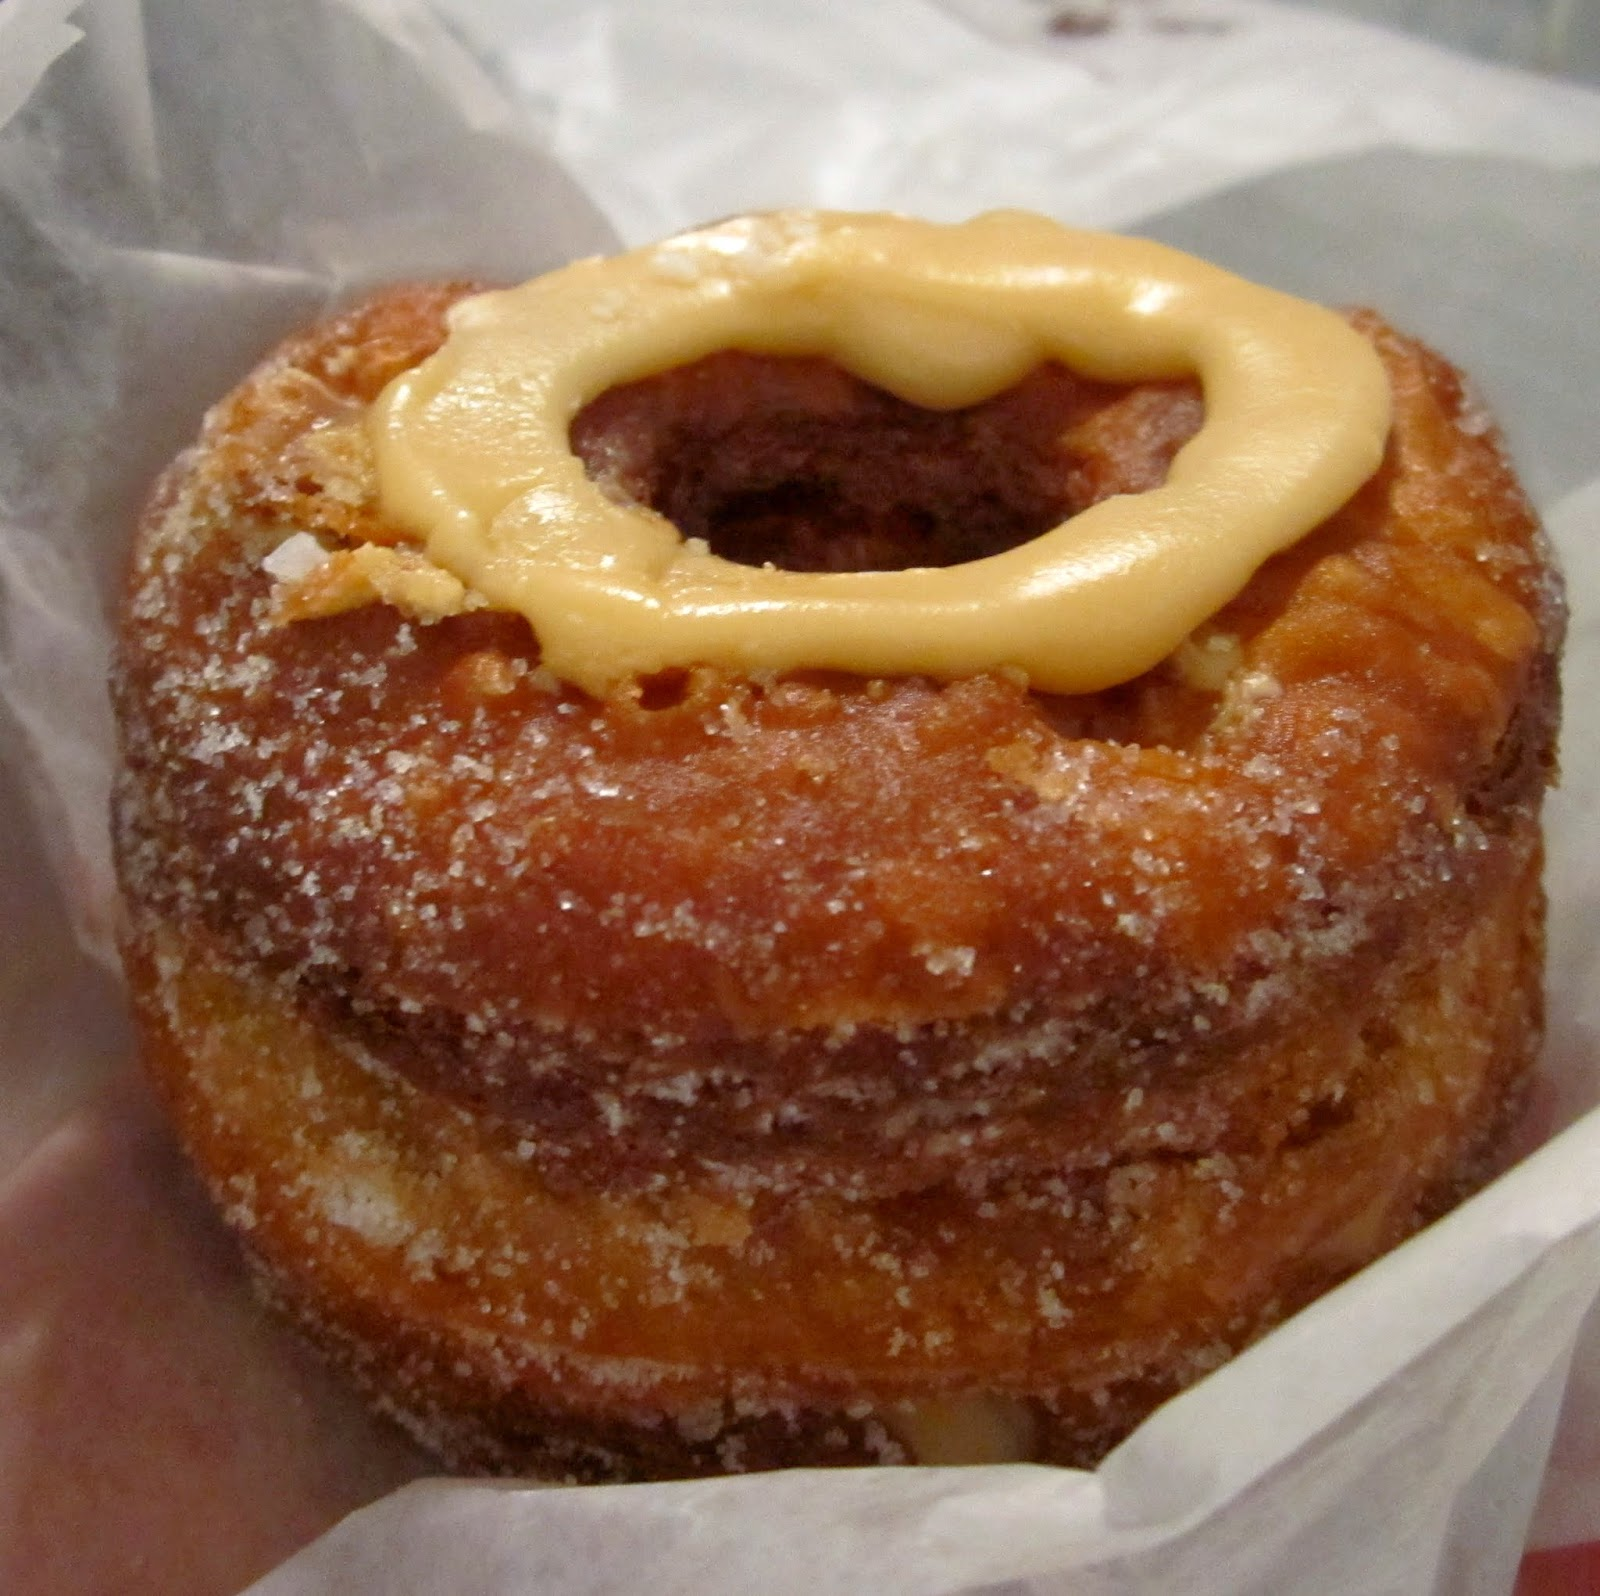 Dominique Ansel Bakery Dulce de Leche Cronut NYC New York City November 2014